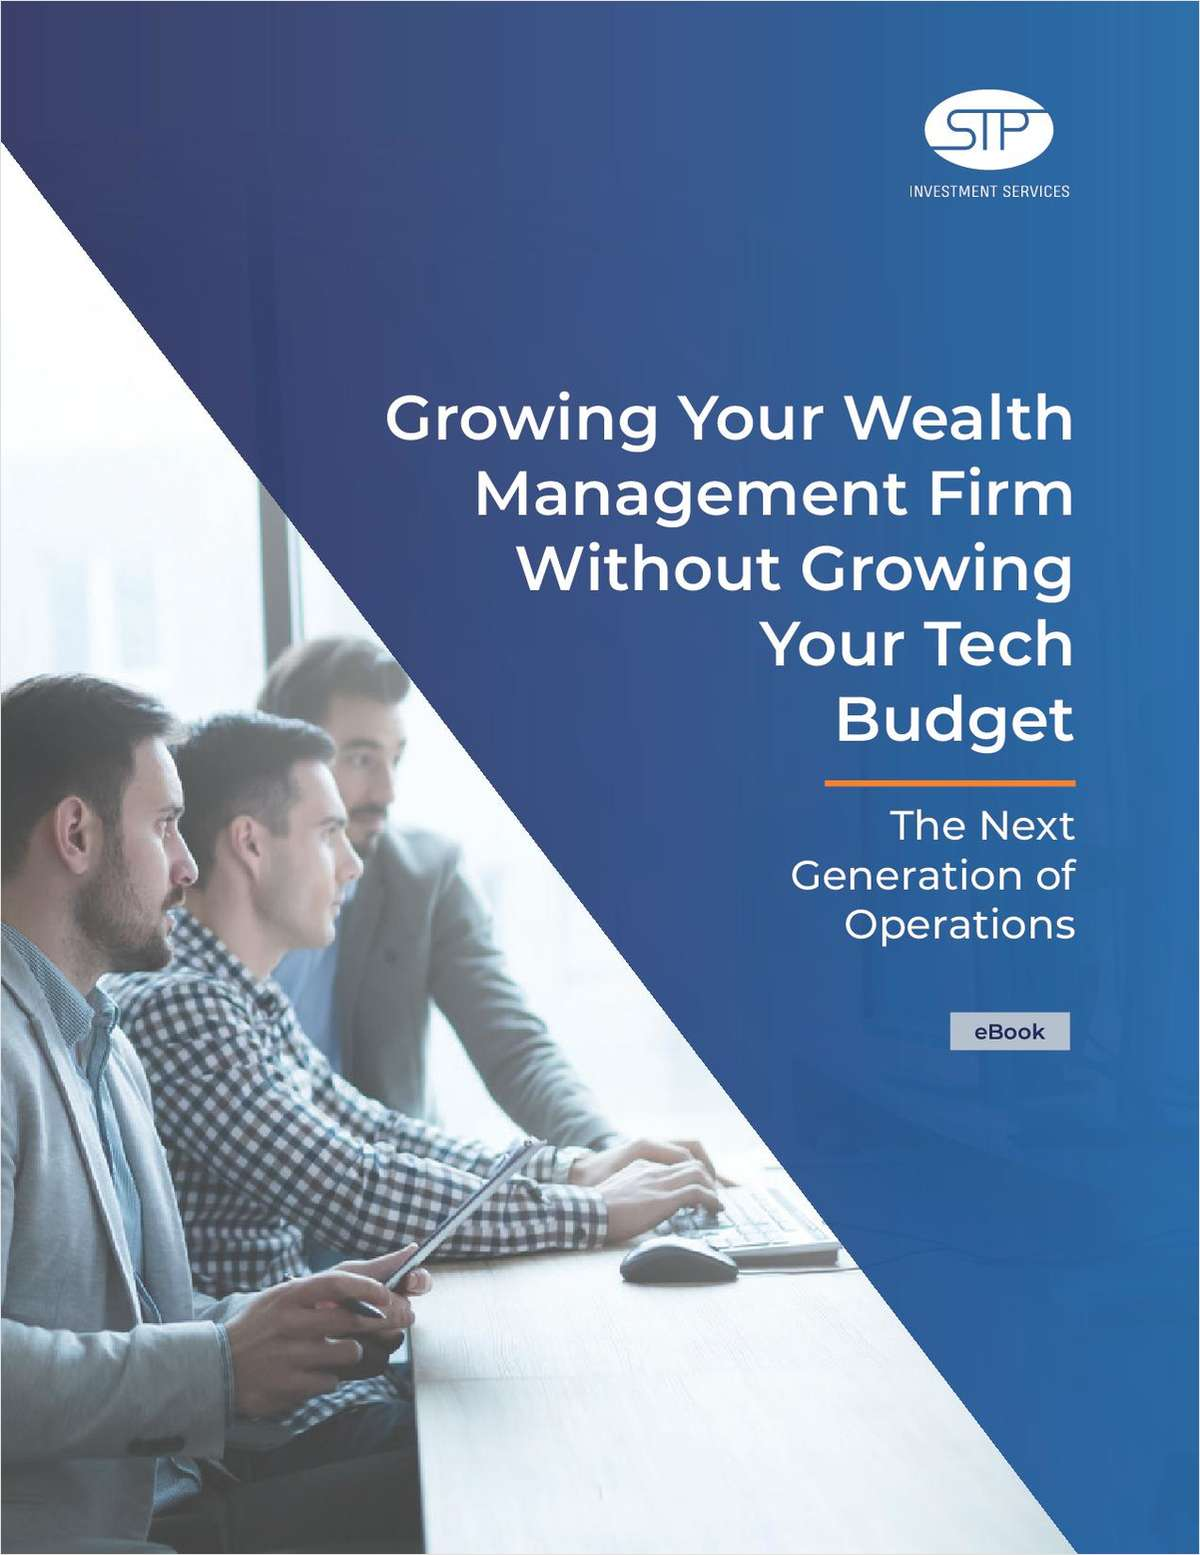 Growing Your Wealth Management Firm Without Growing Your Tech Budget